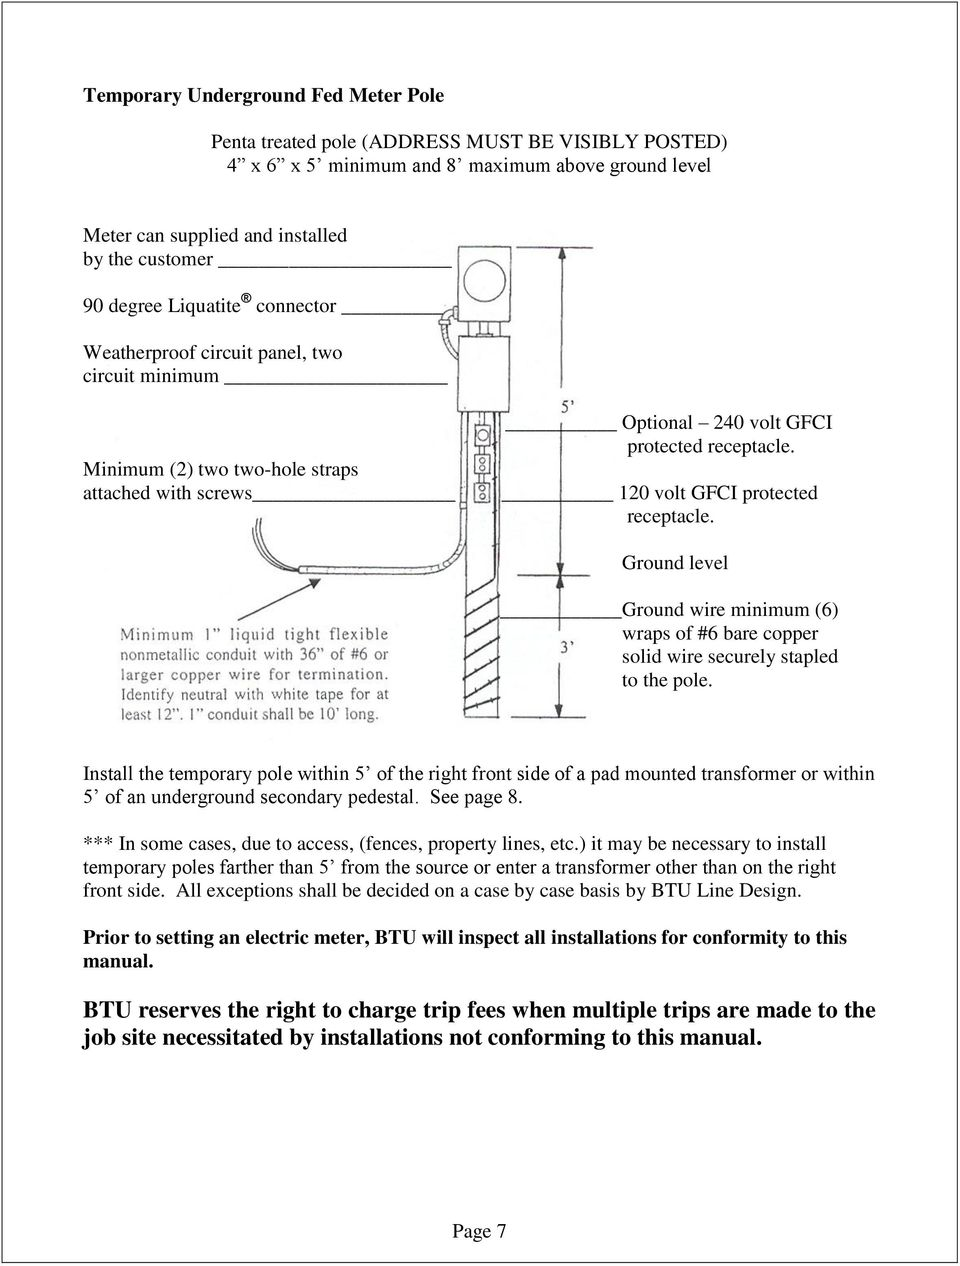 Service Entrance Requirements Manual Pdf Conduit Wiring Guide 120 Volt Gfci Protected Receptacle Ground Level Wire Minimum 6 Wraps Of